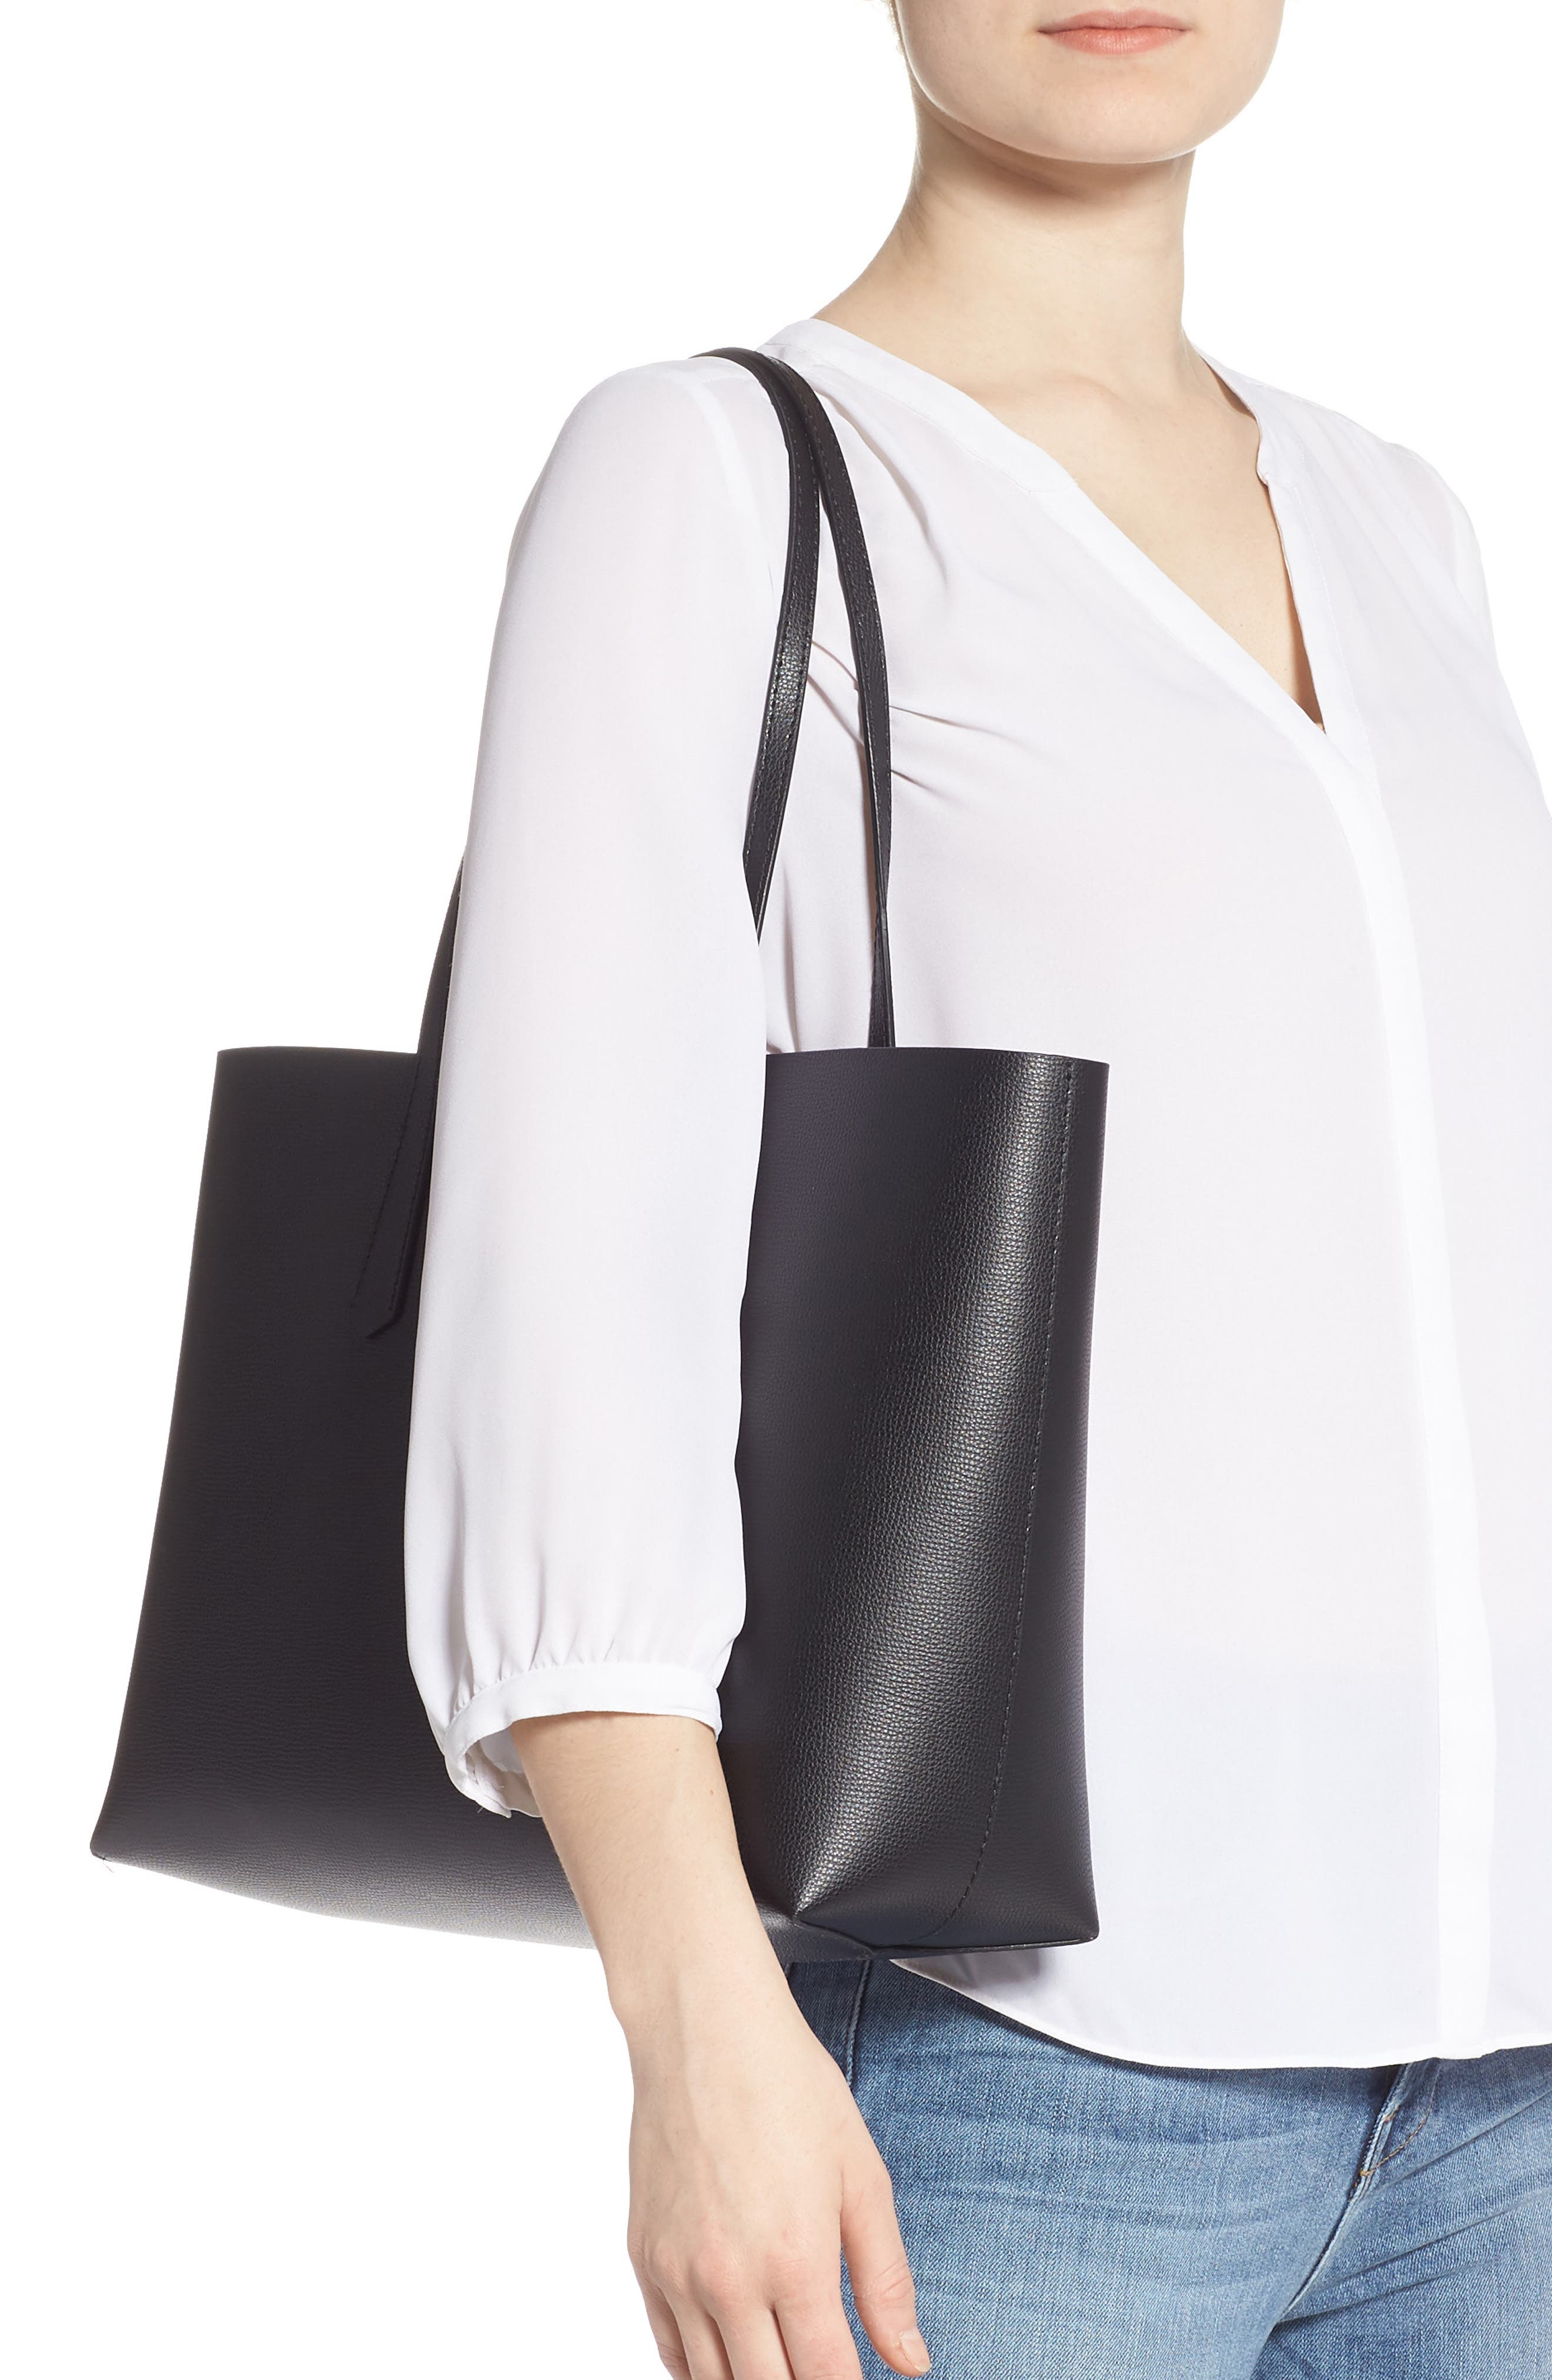 KATE SPADE NEW YORK, large molly leather tote, Alternate thumbnail 2, color, BLACK